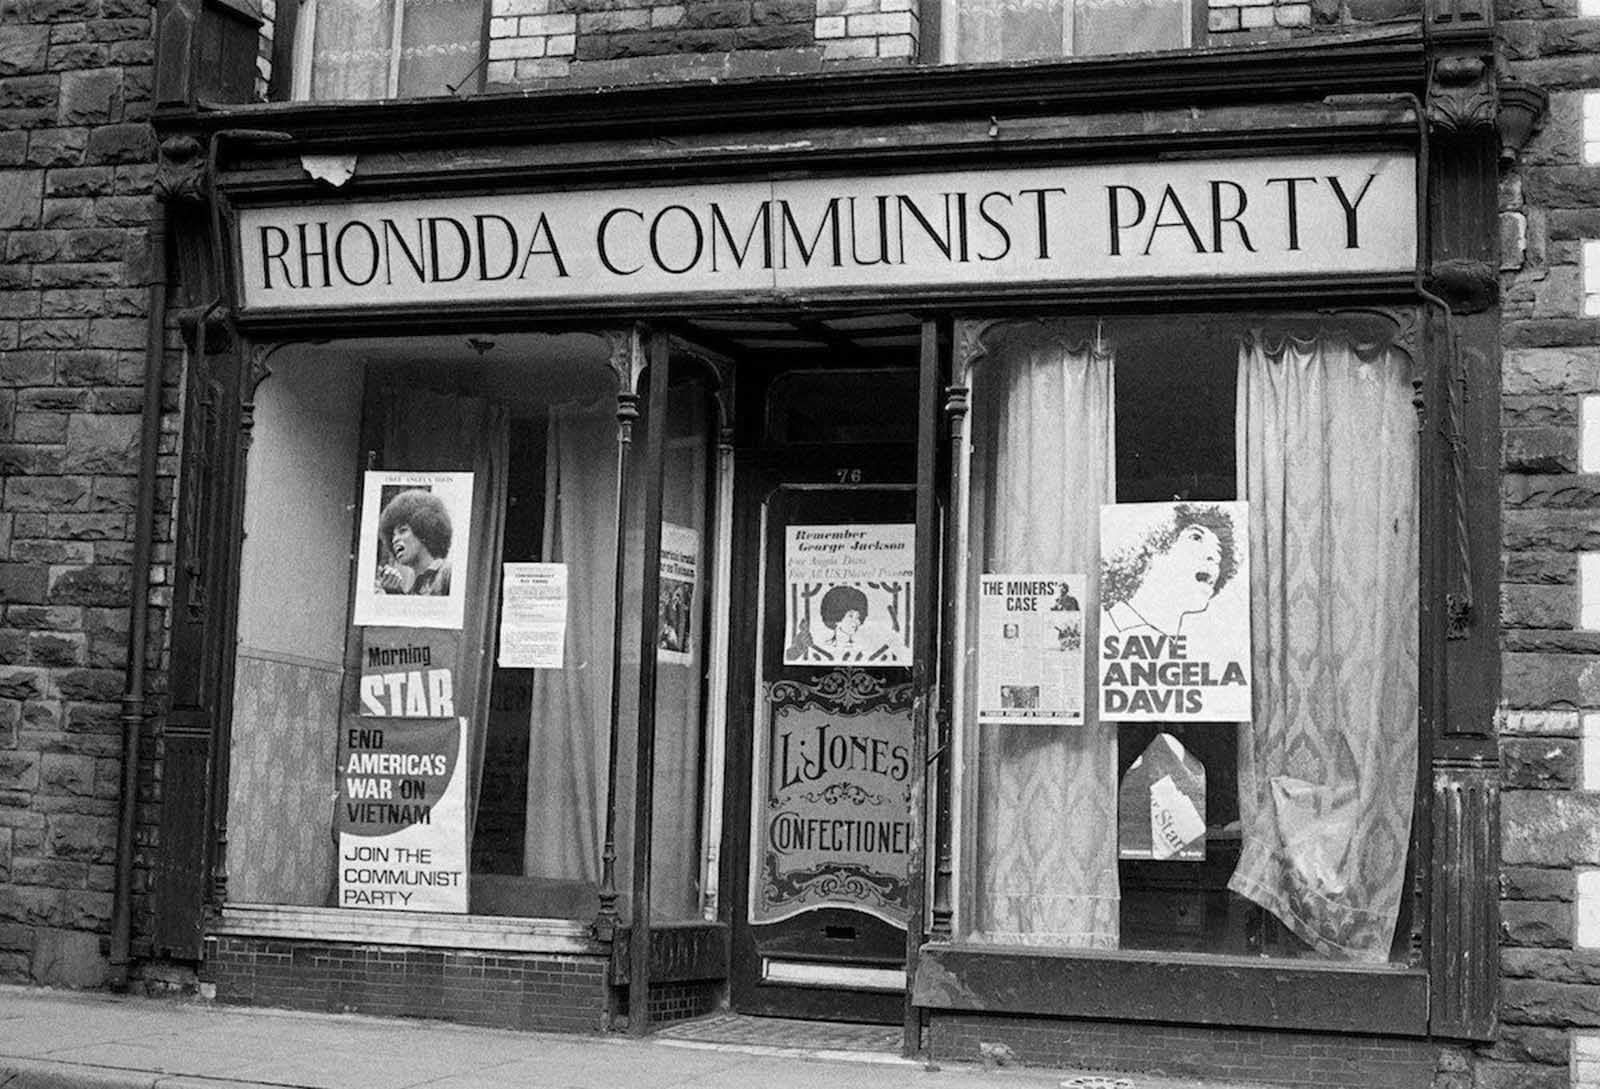 The headquarters of the Rhondda Communist Party in Wales. In the windows are posters of American political activist Angela Davis. 1972.